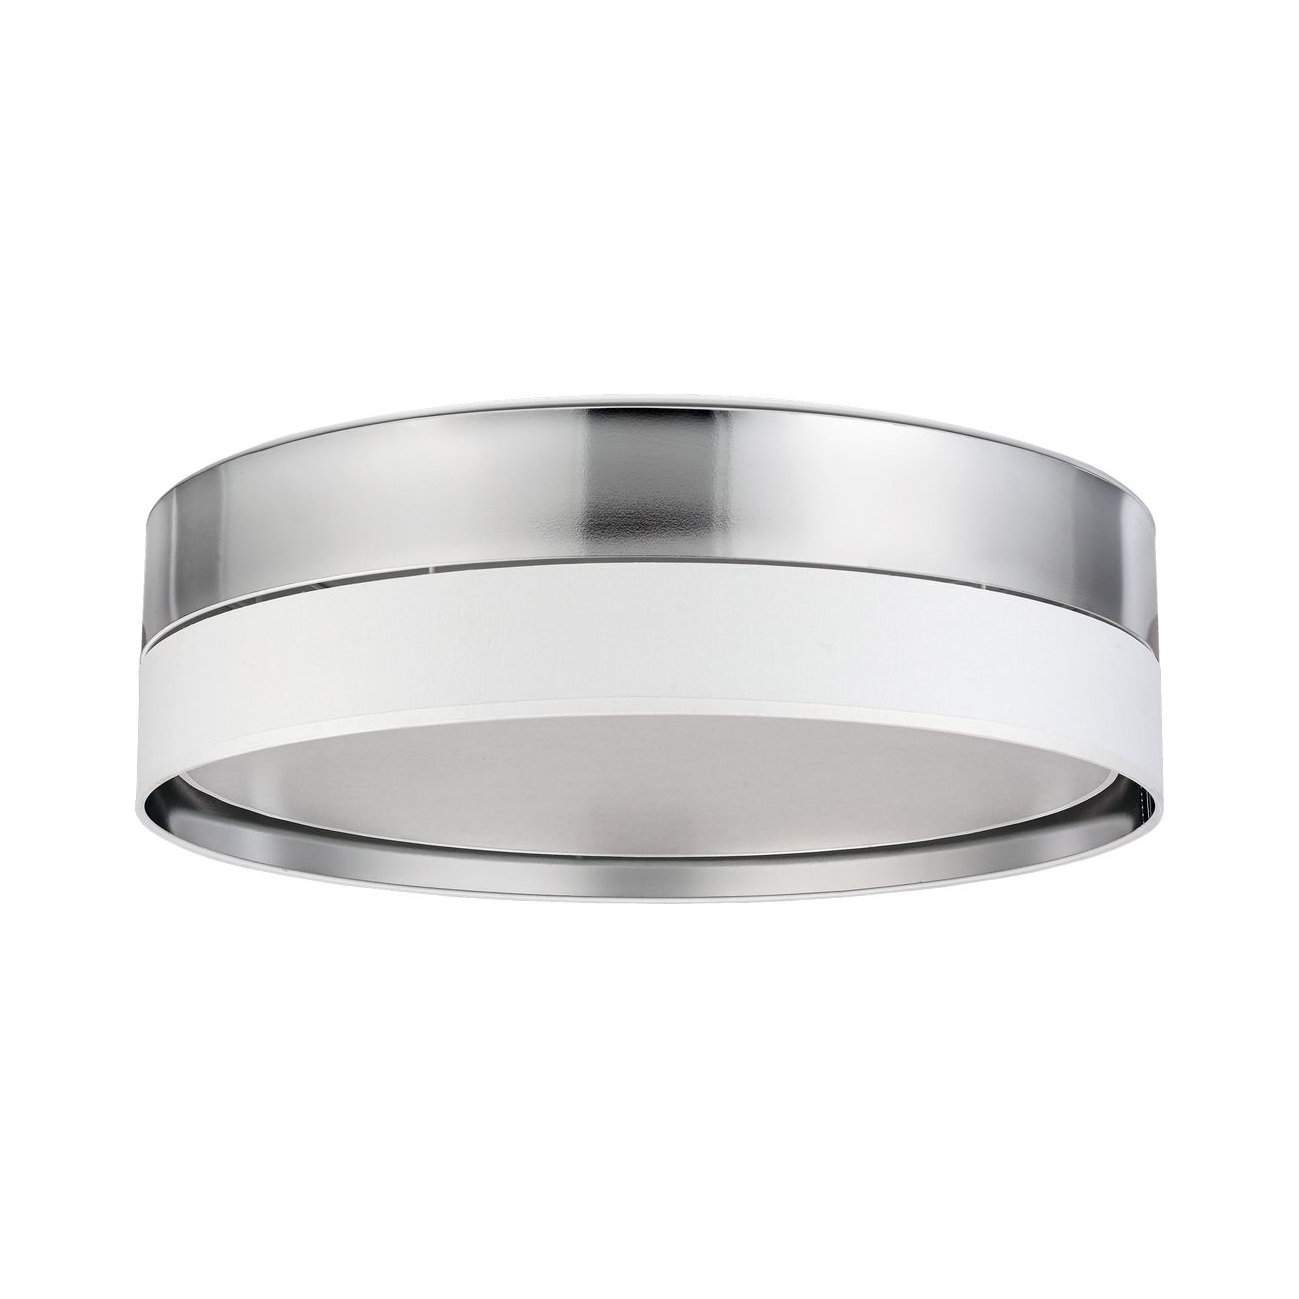 Светильник TK Lighting 4179 D600mm Hilton Silver